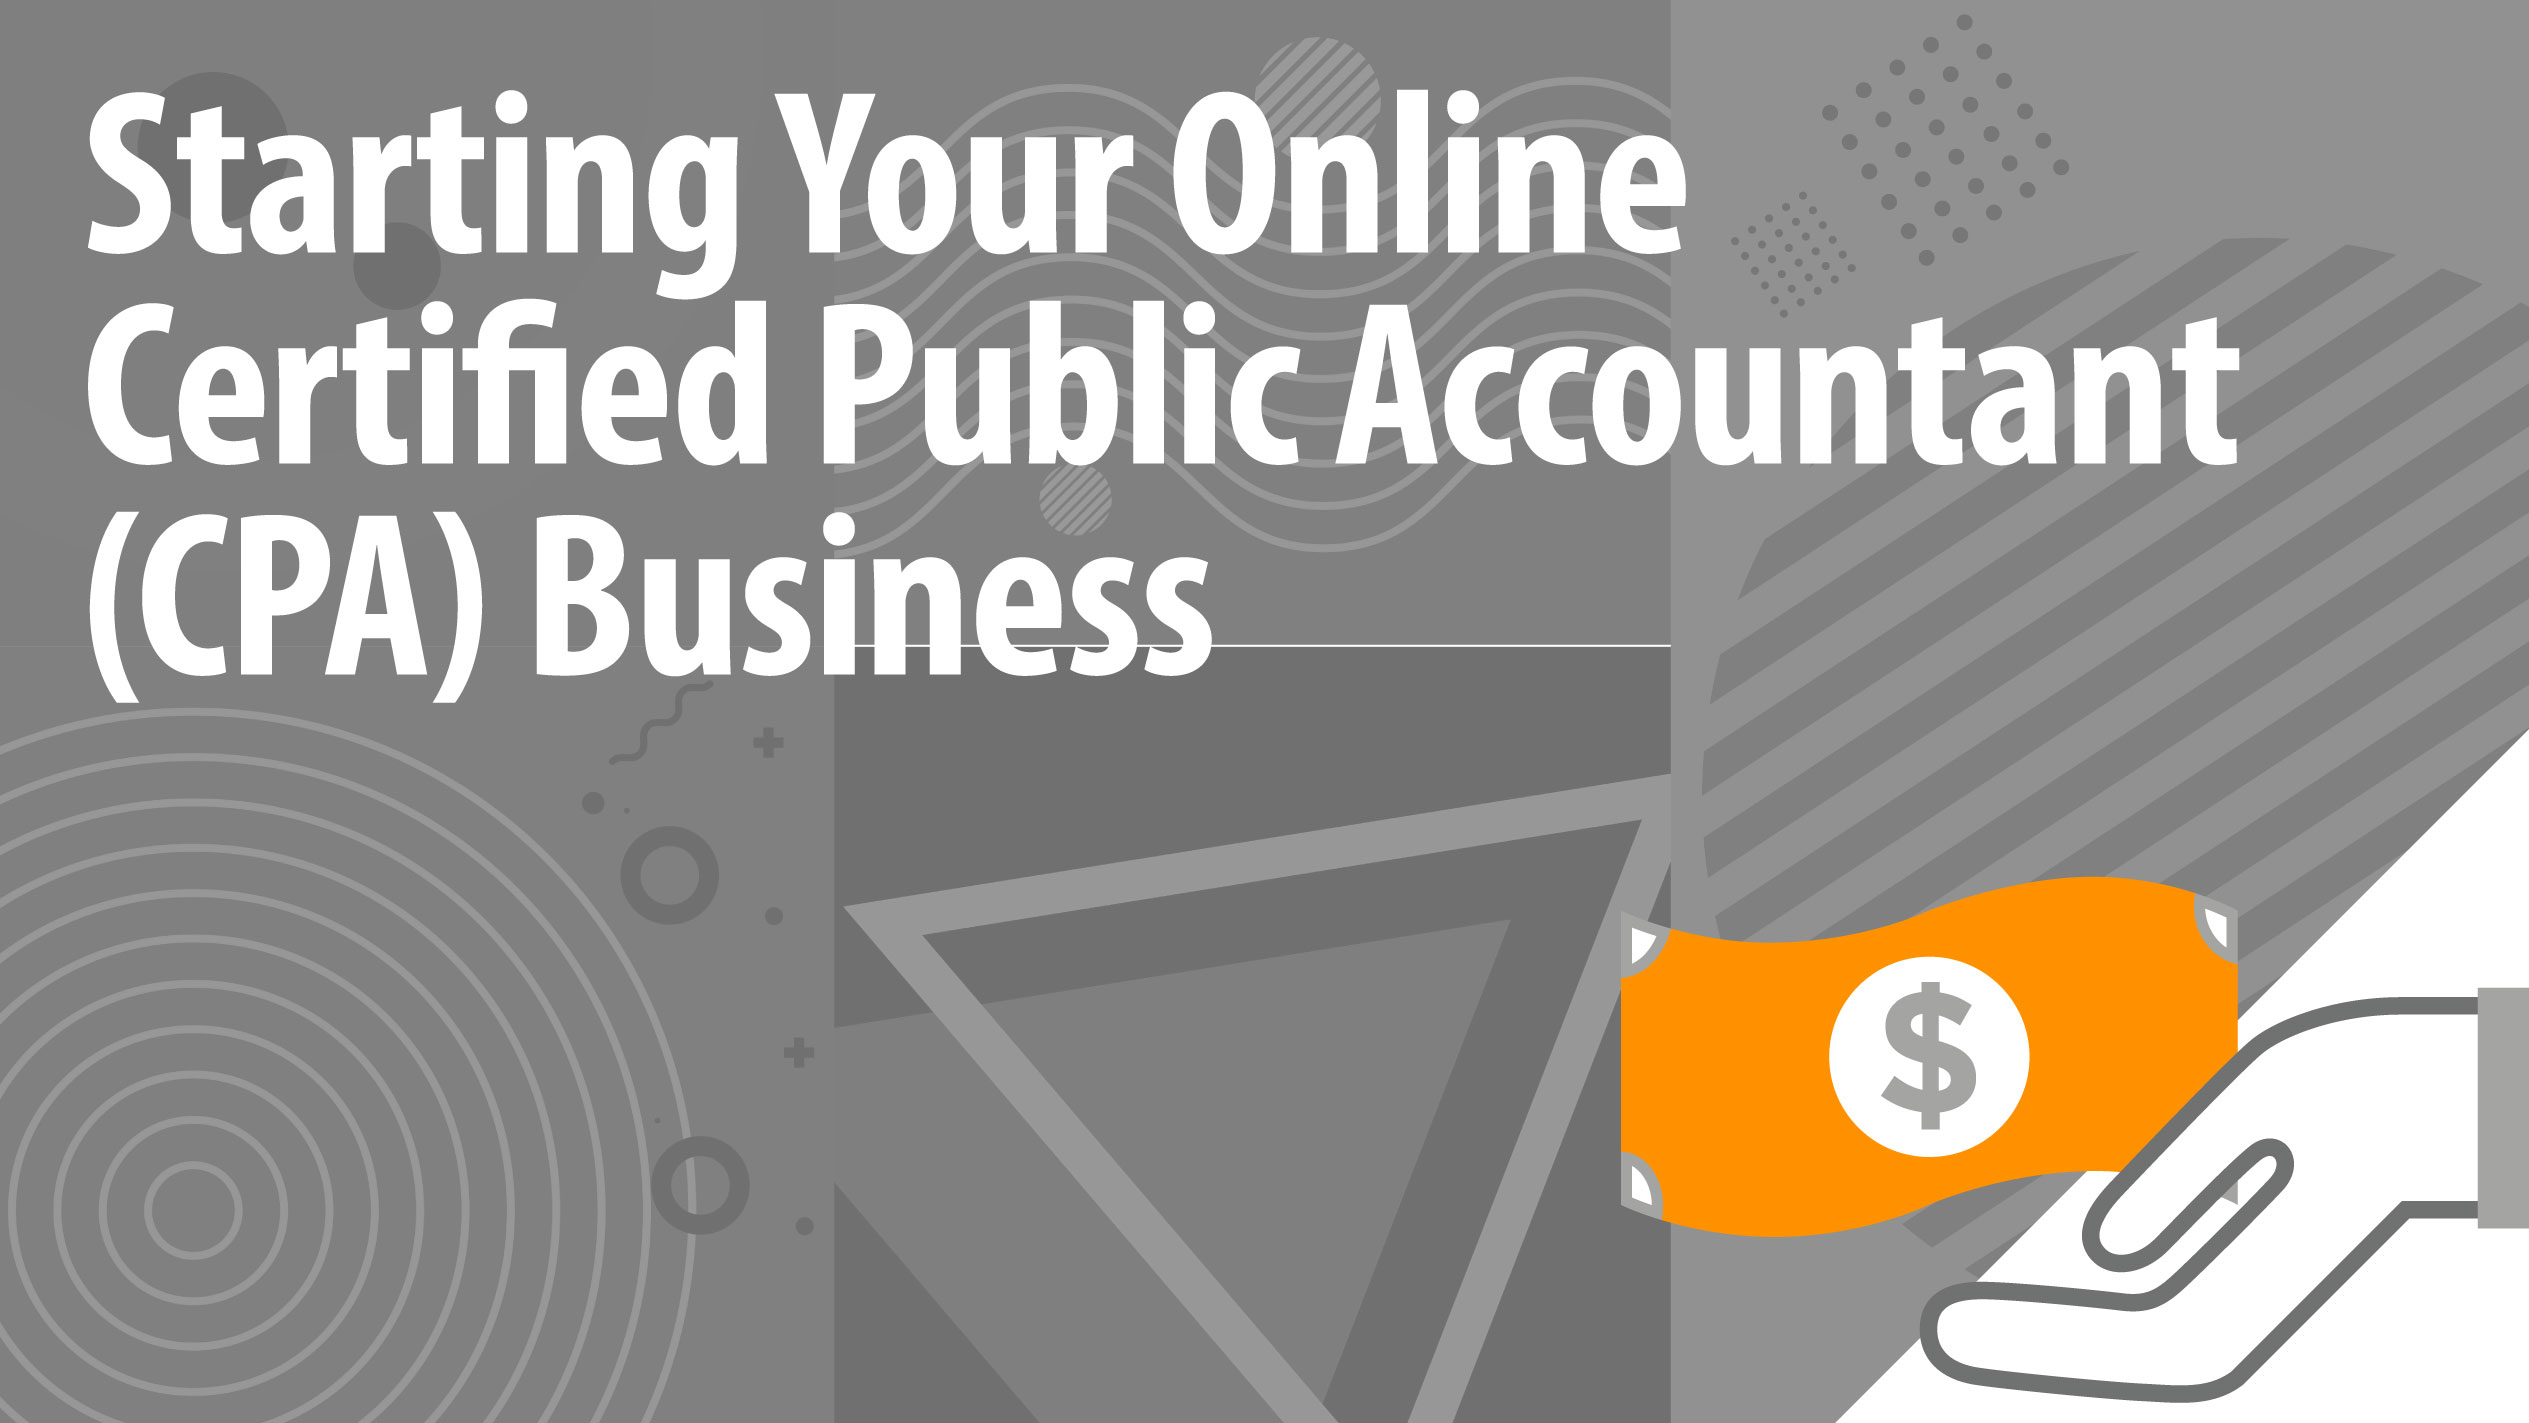 Starting Your Online Certified Public Accountant (CPA) Business